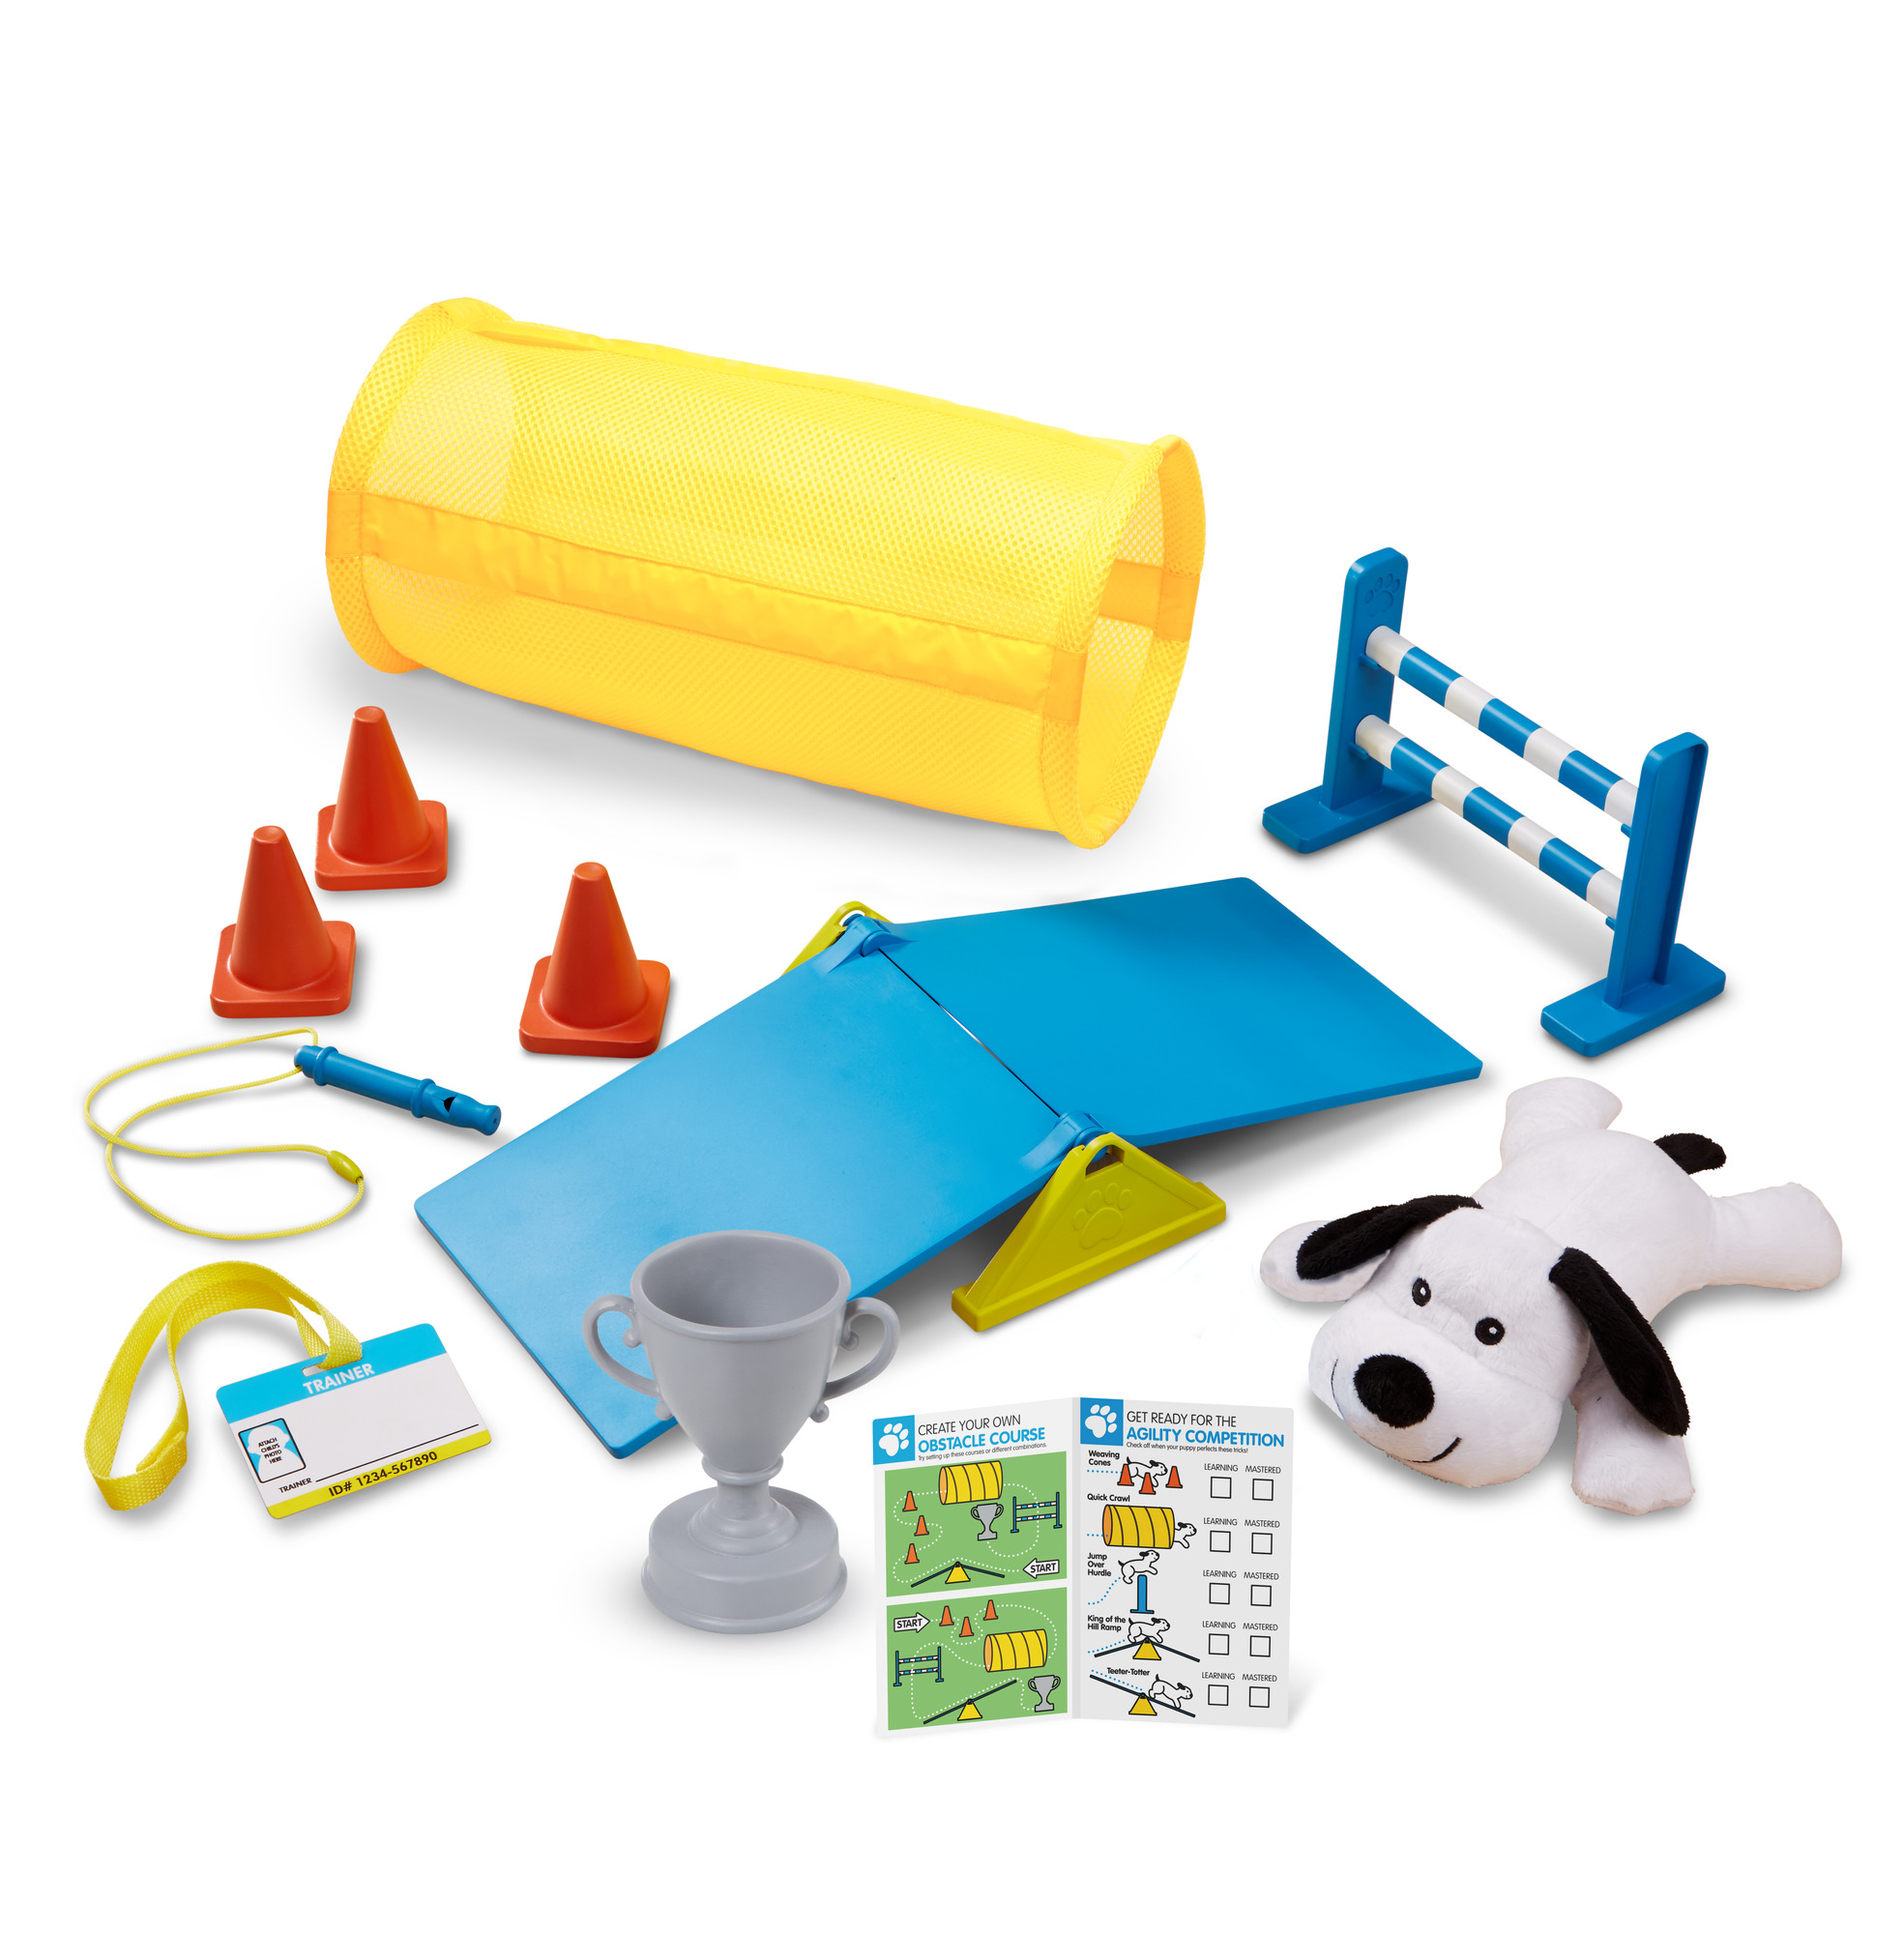 Melissa & Doug Tricks & Training Puppy School Play Set with Stuffed Animal Plush Dog (12 Pcs)